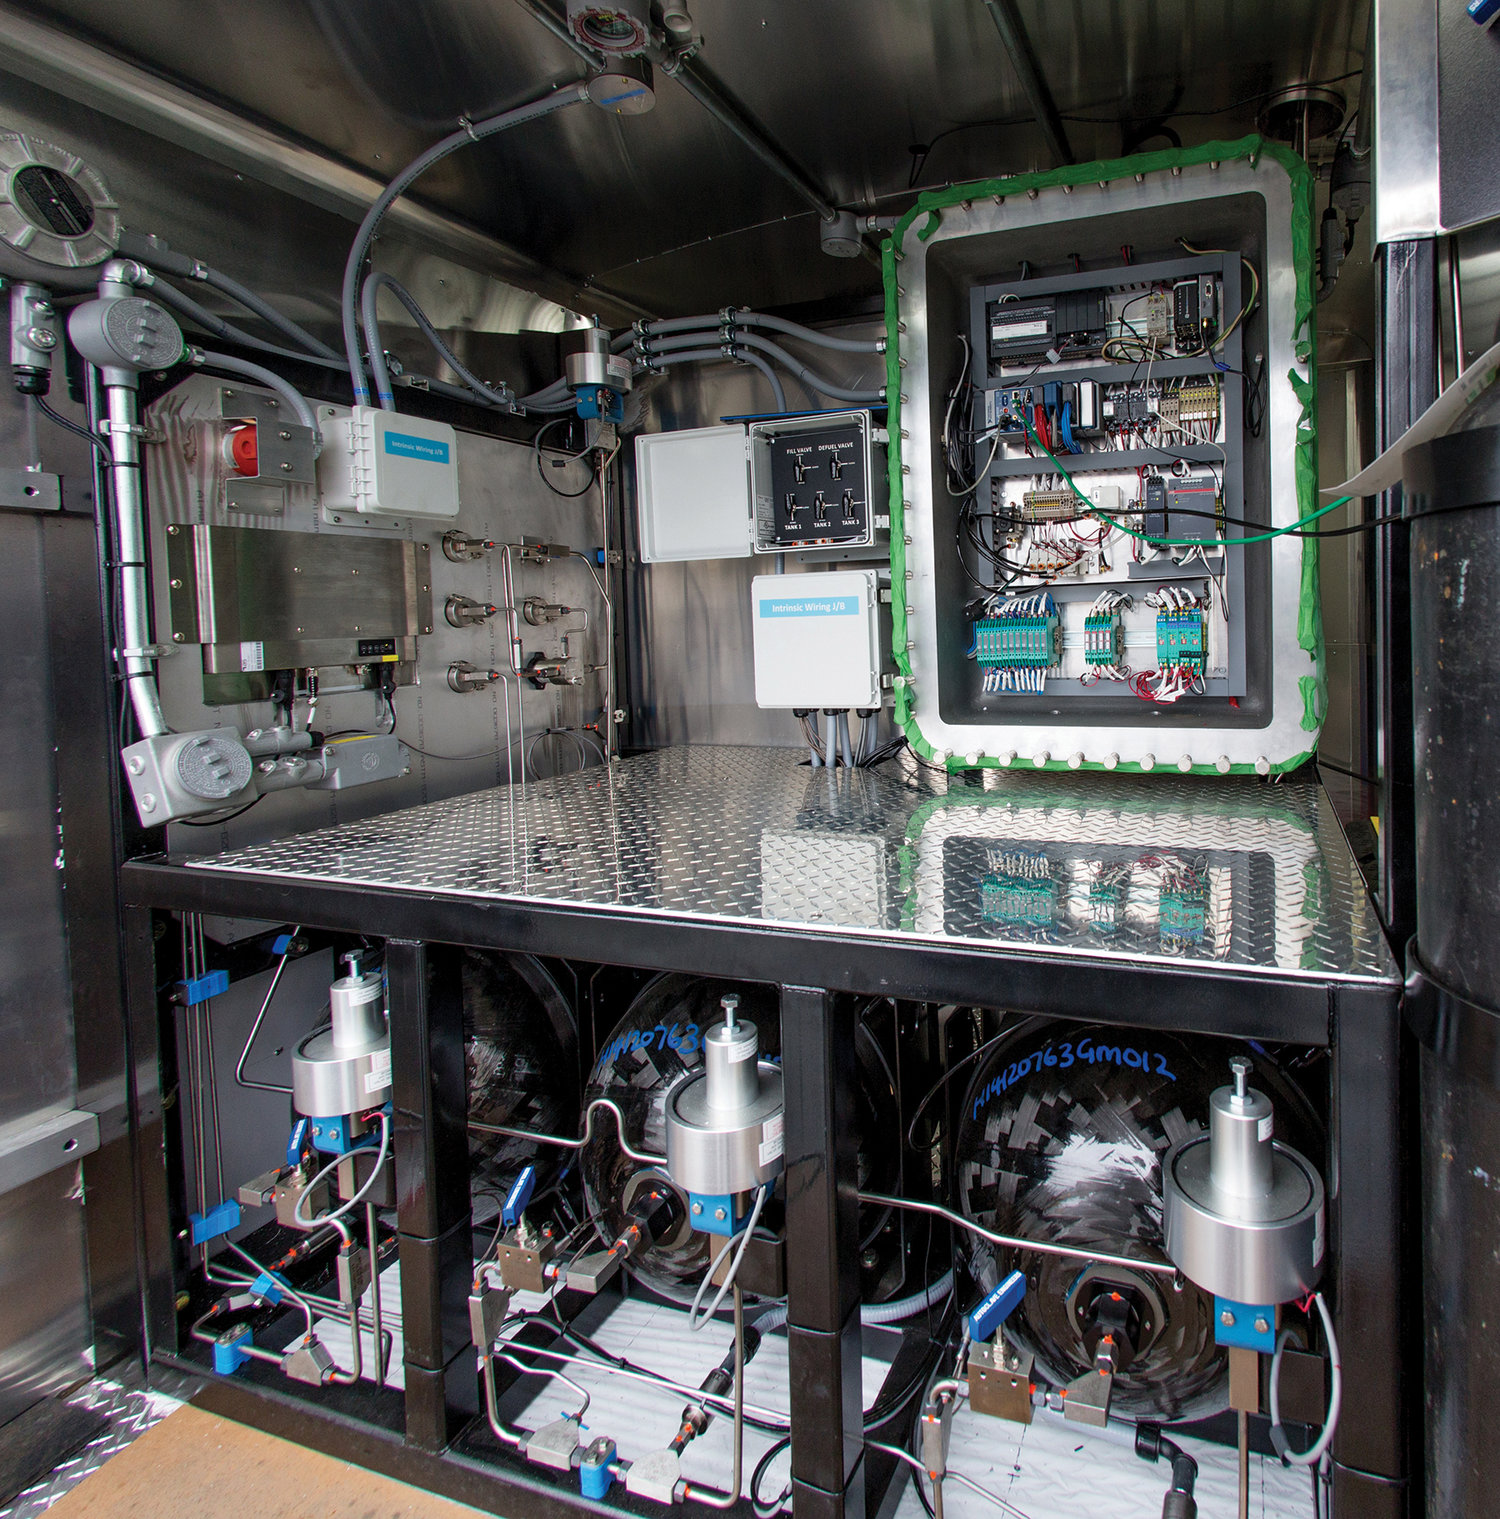 Hydrogen Station Testing Devices Powertech Labs Trailer Wiring Back Of During Build2 Edit